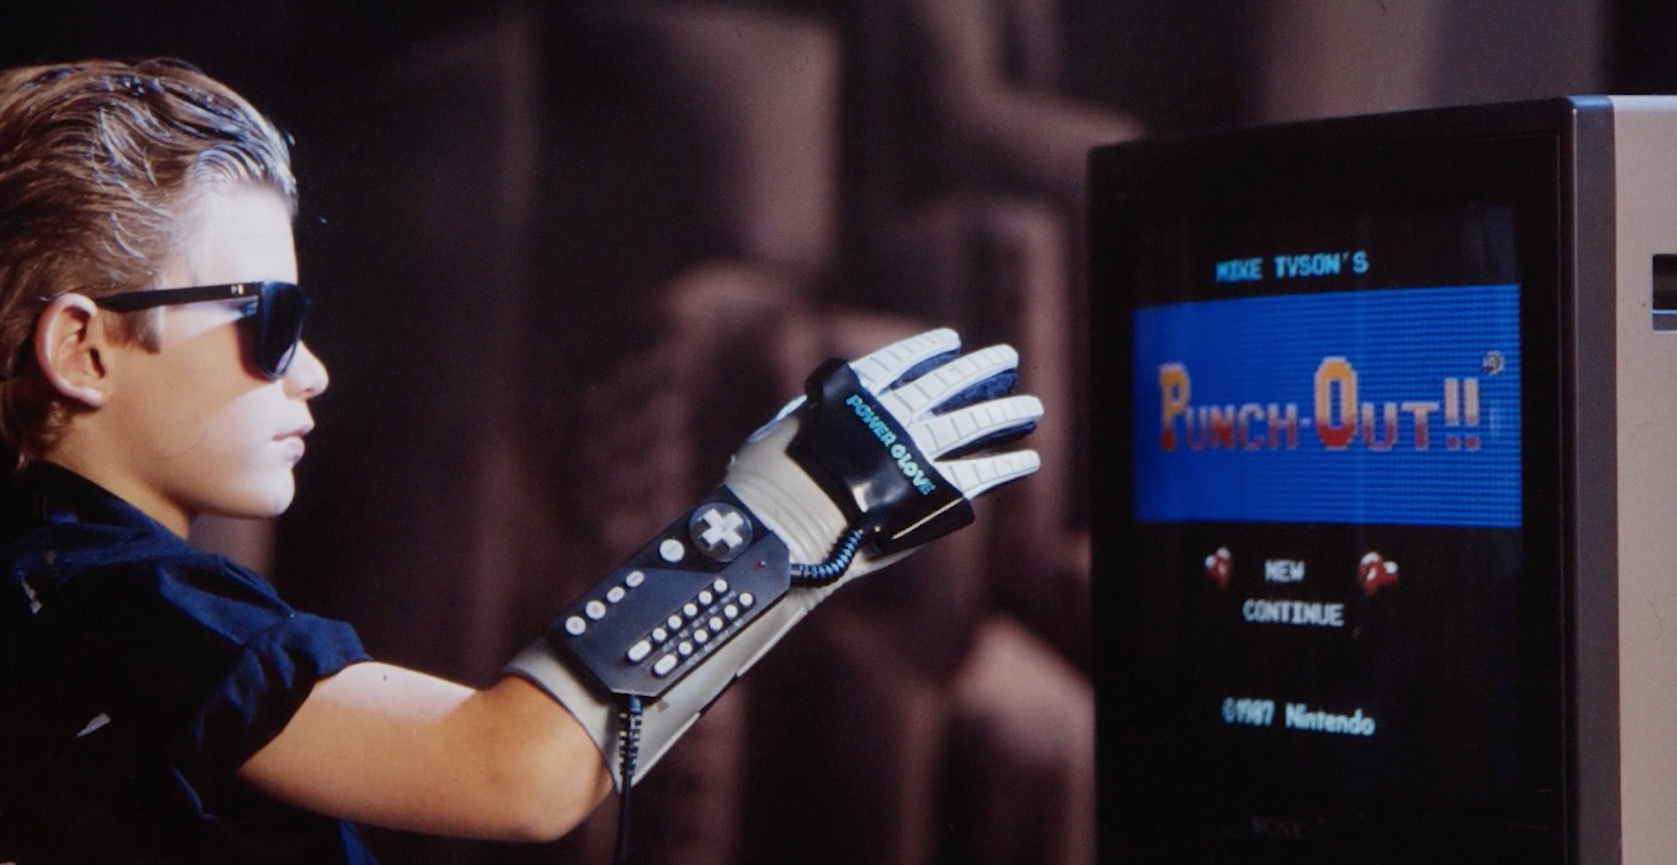 Feature: Uncovering The Unlikely Story Of The World's Worst Controller In The Power Of Glove